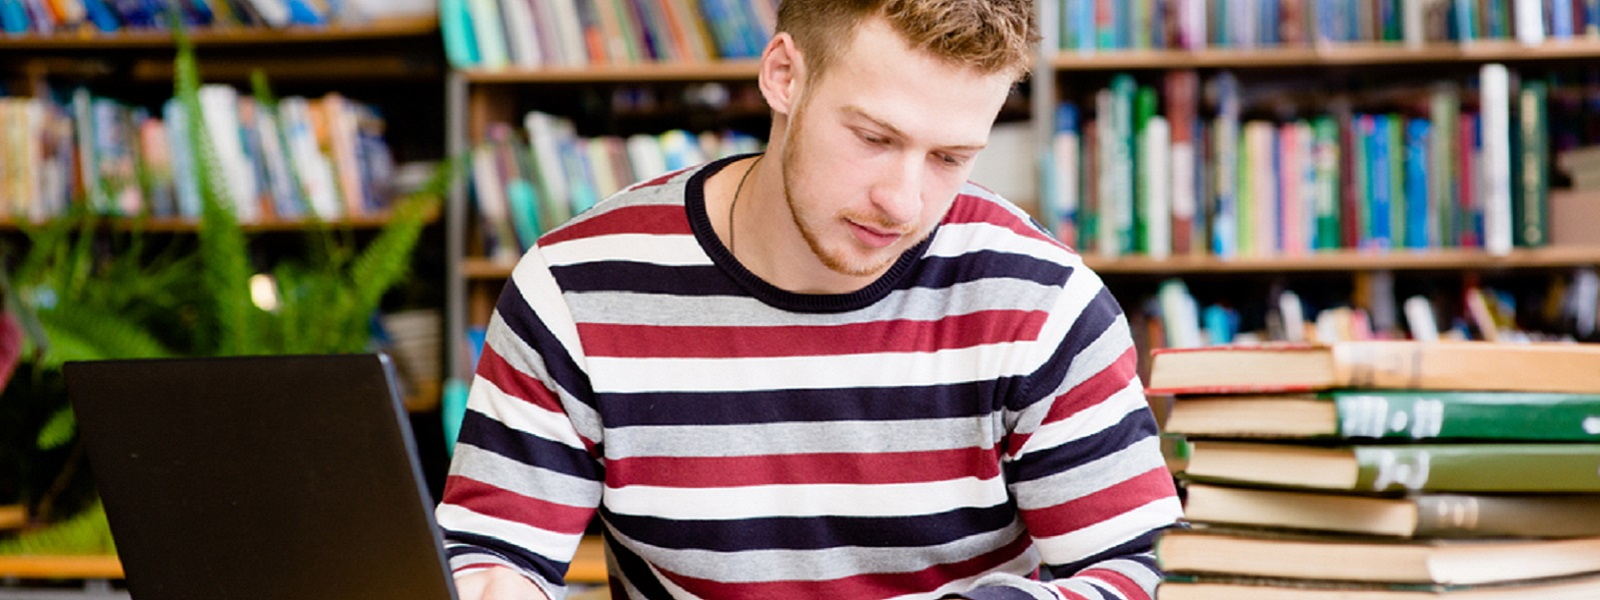 Male studying in library with laptop